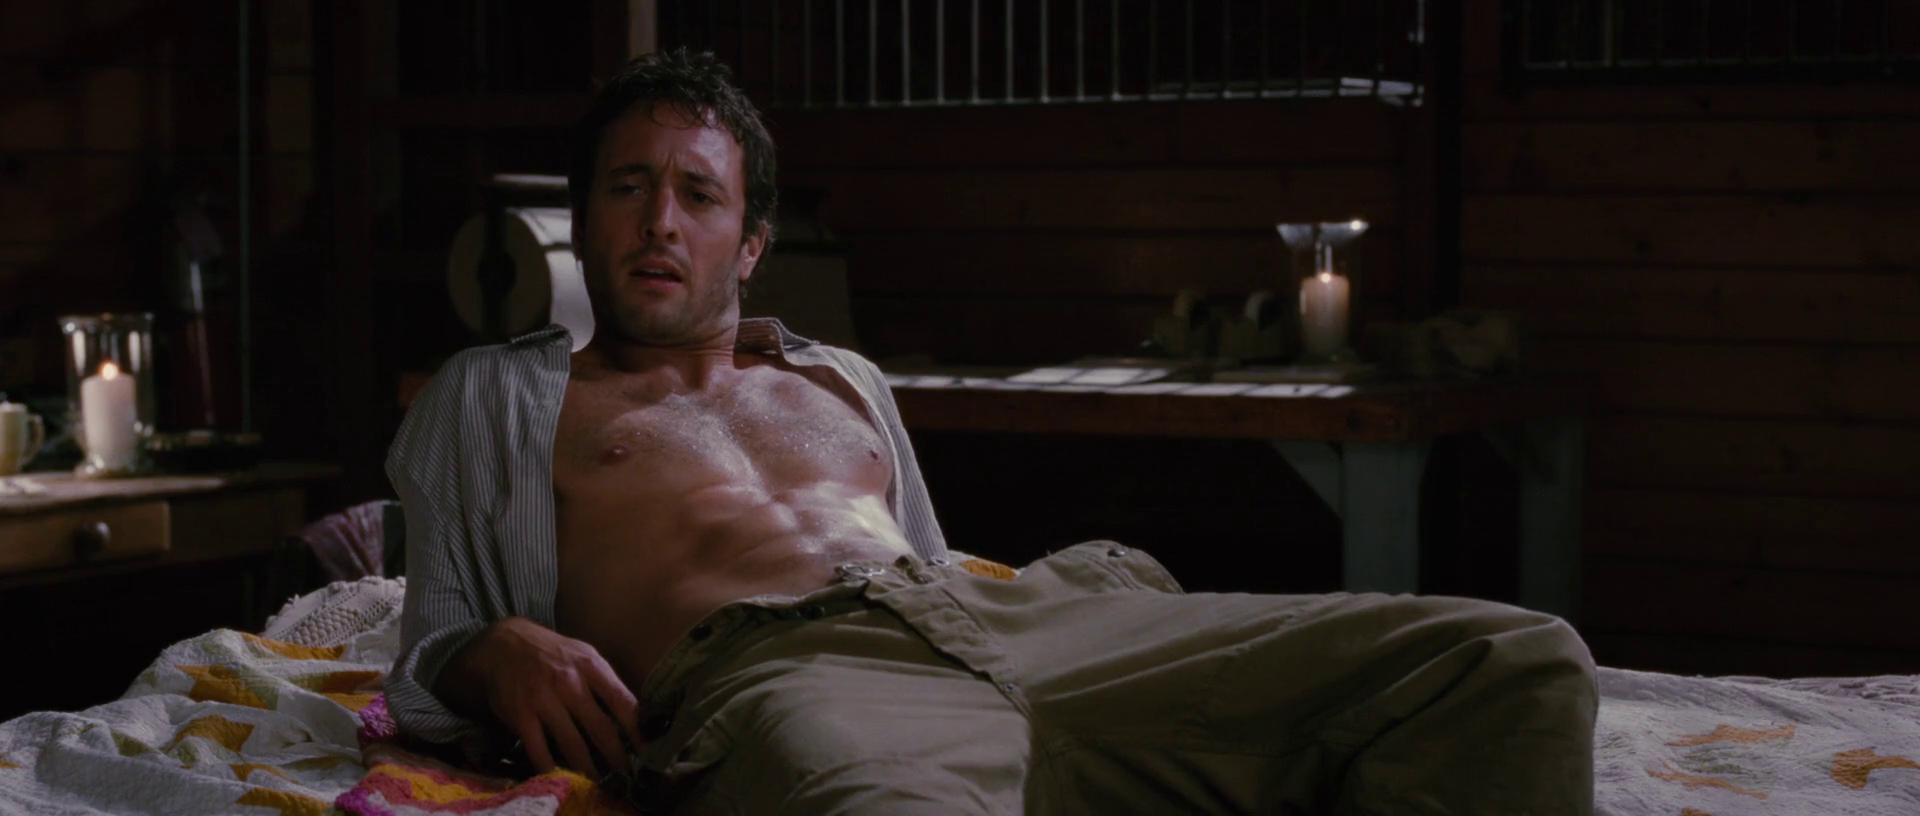 Alex O'Loughlin as Stan shirtless in The Back-up Plan